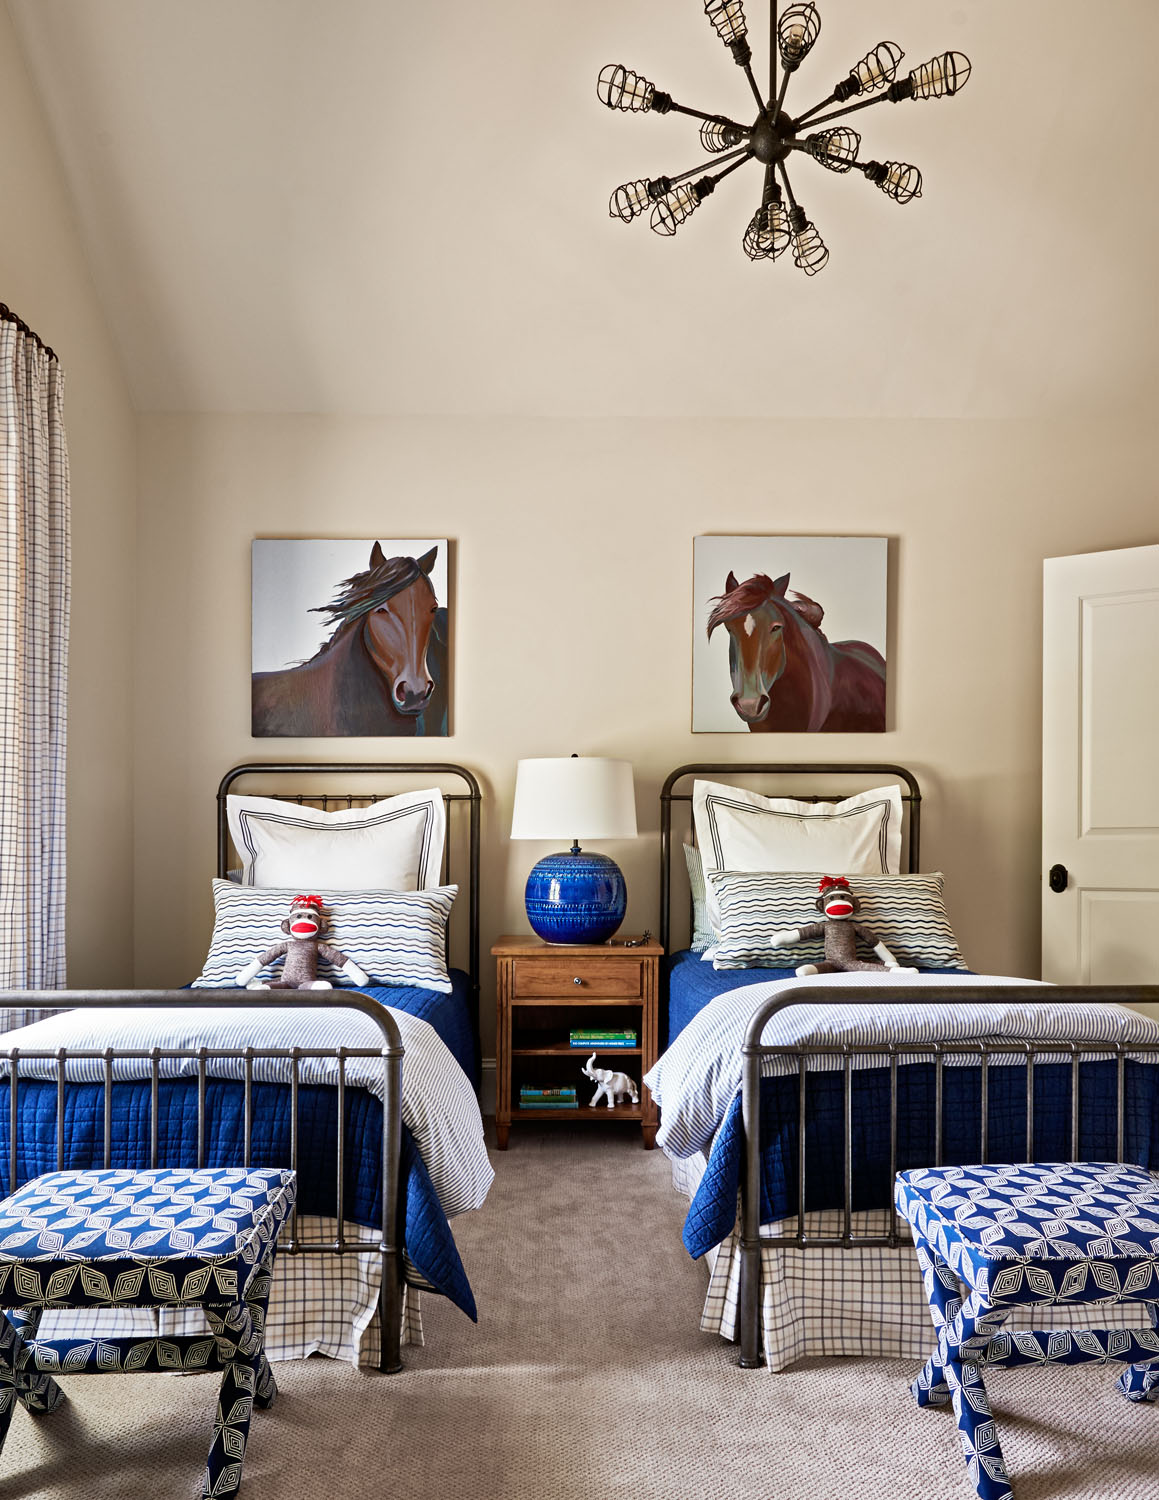 16-TZD Cheval Boy Bedroom